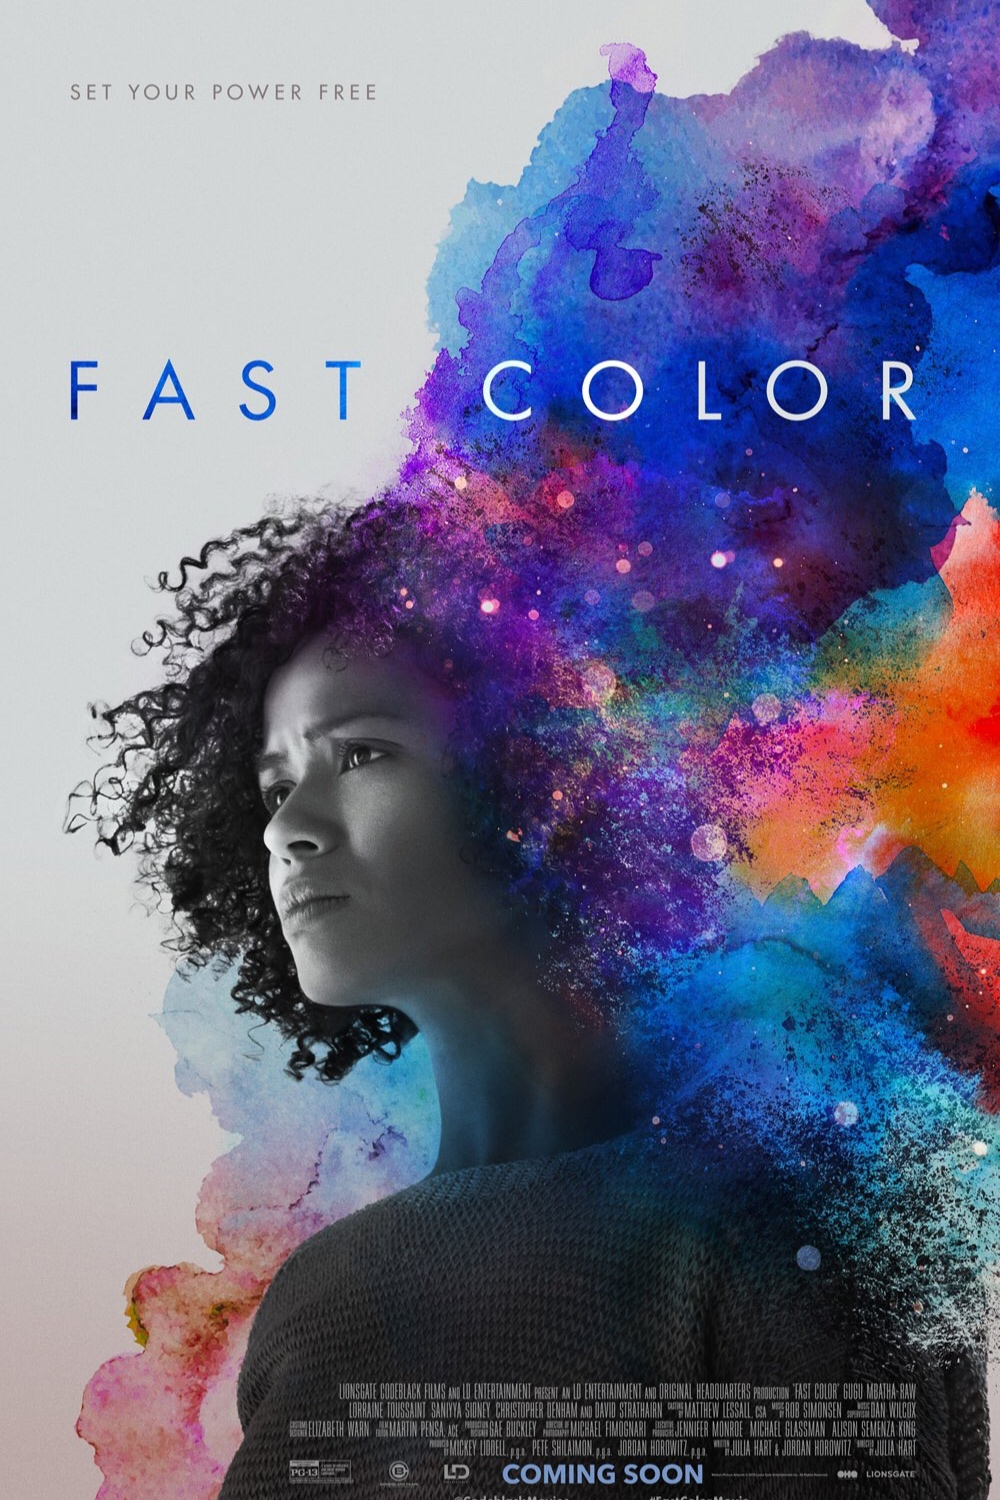 Theatrical Release Poster for Fast Color, Lionsgate, 2019.